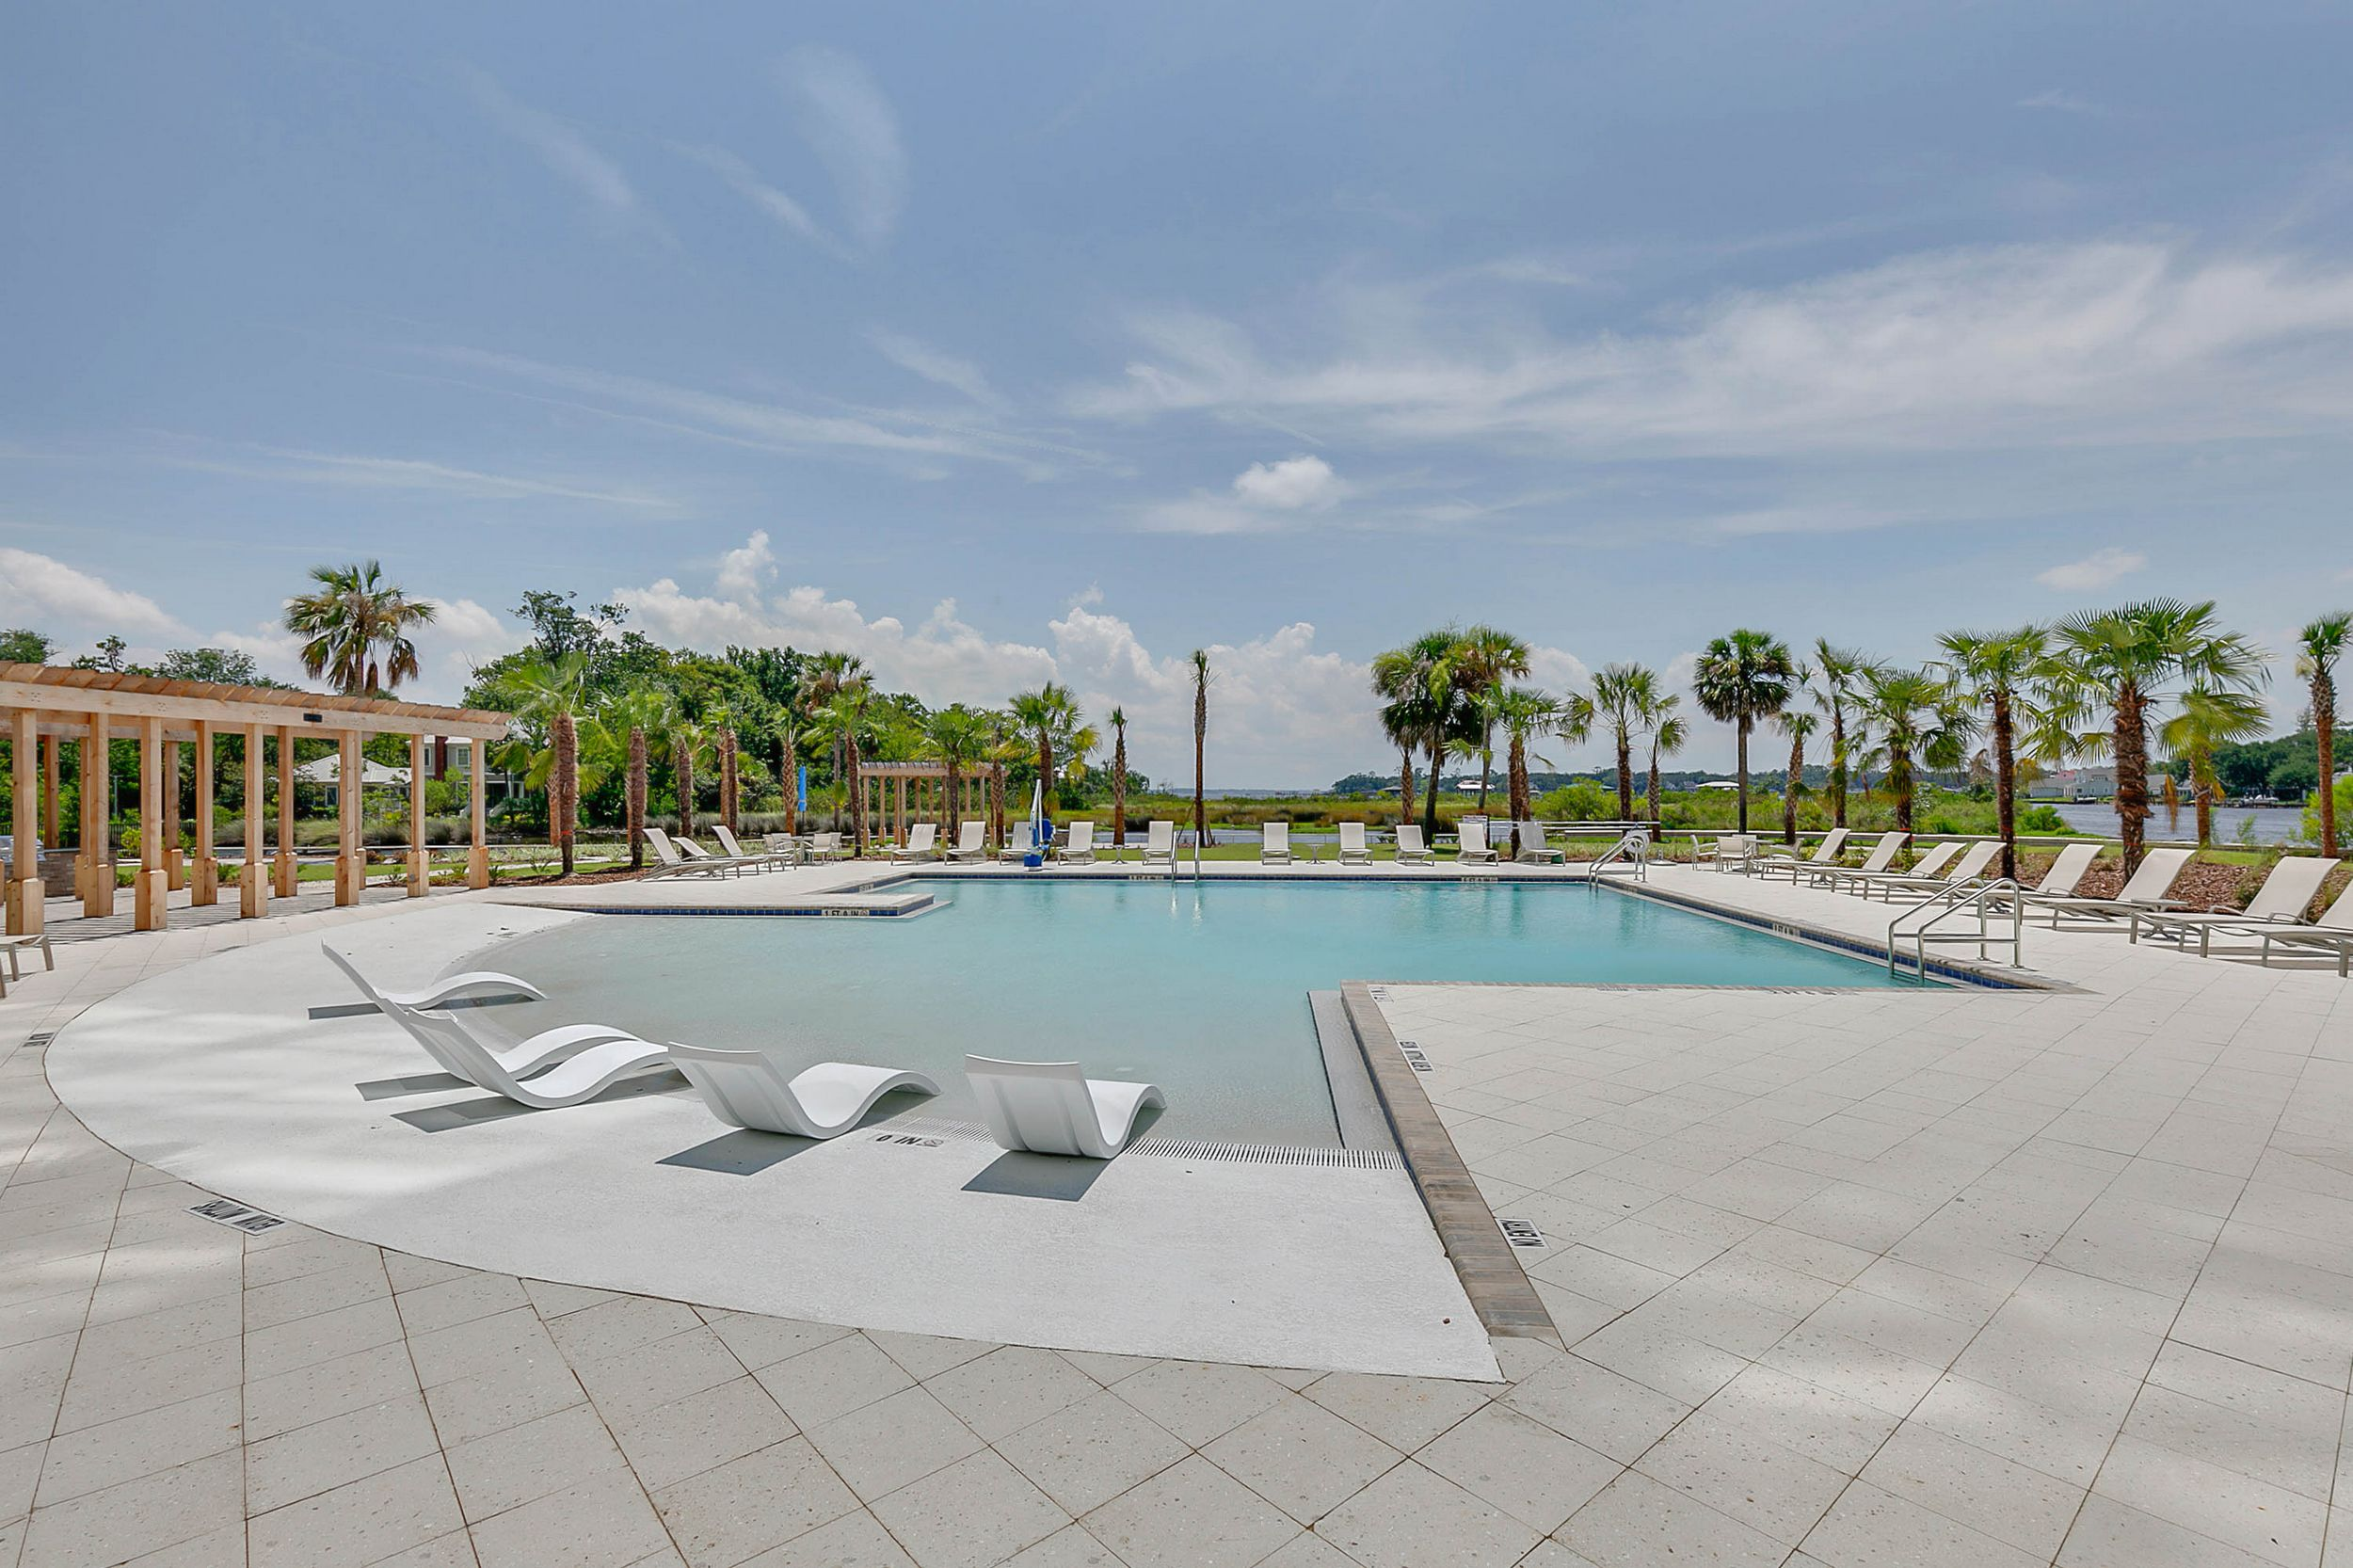 Image of swimming pool with sundeck.